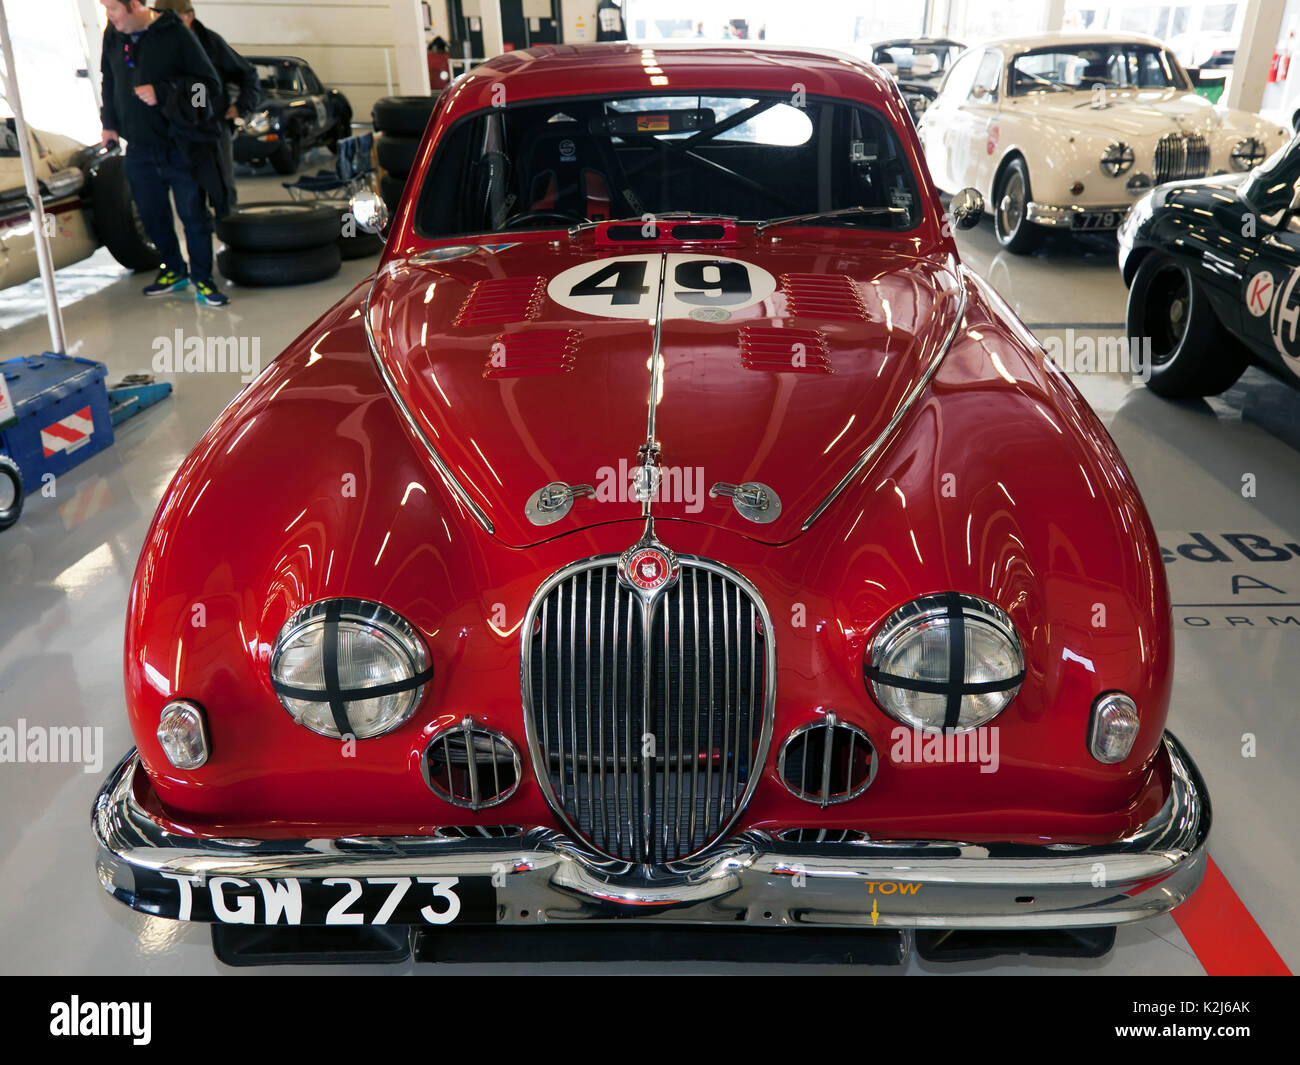 Front view of a  1959 Jaguar 3.4 Litre race car in the International Pits at the 2017 Silverstone Classic - Stock Image